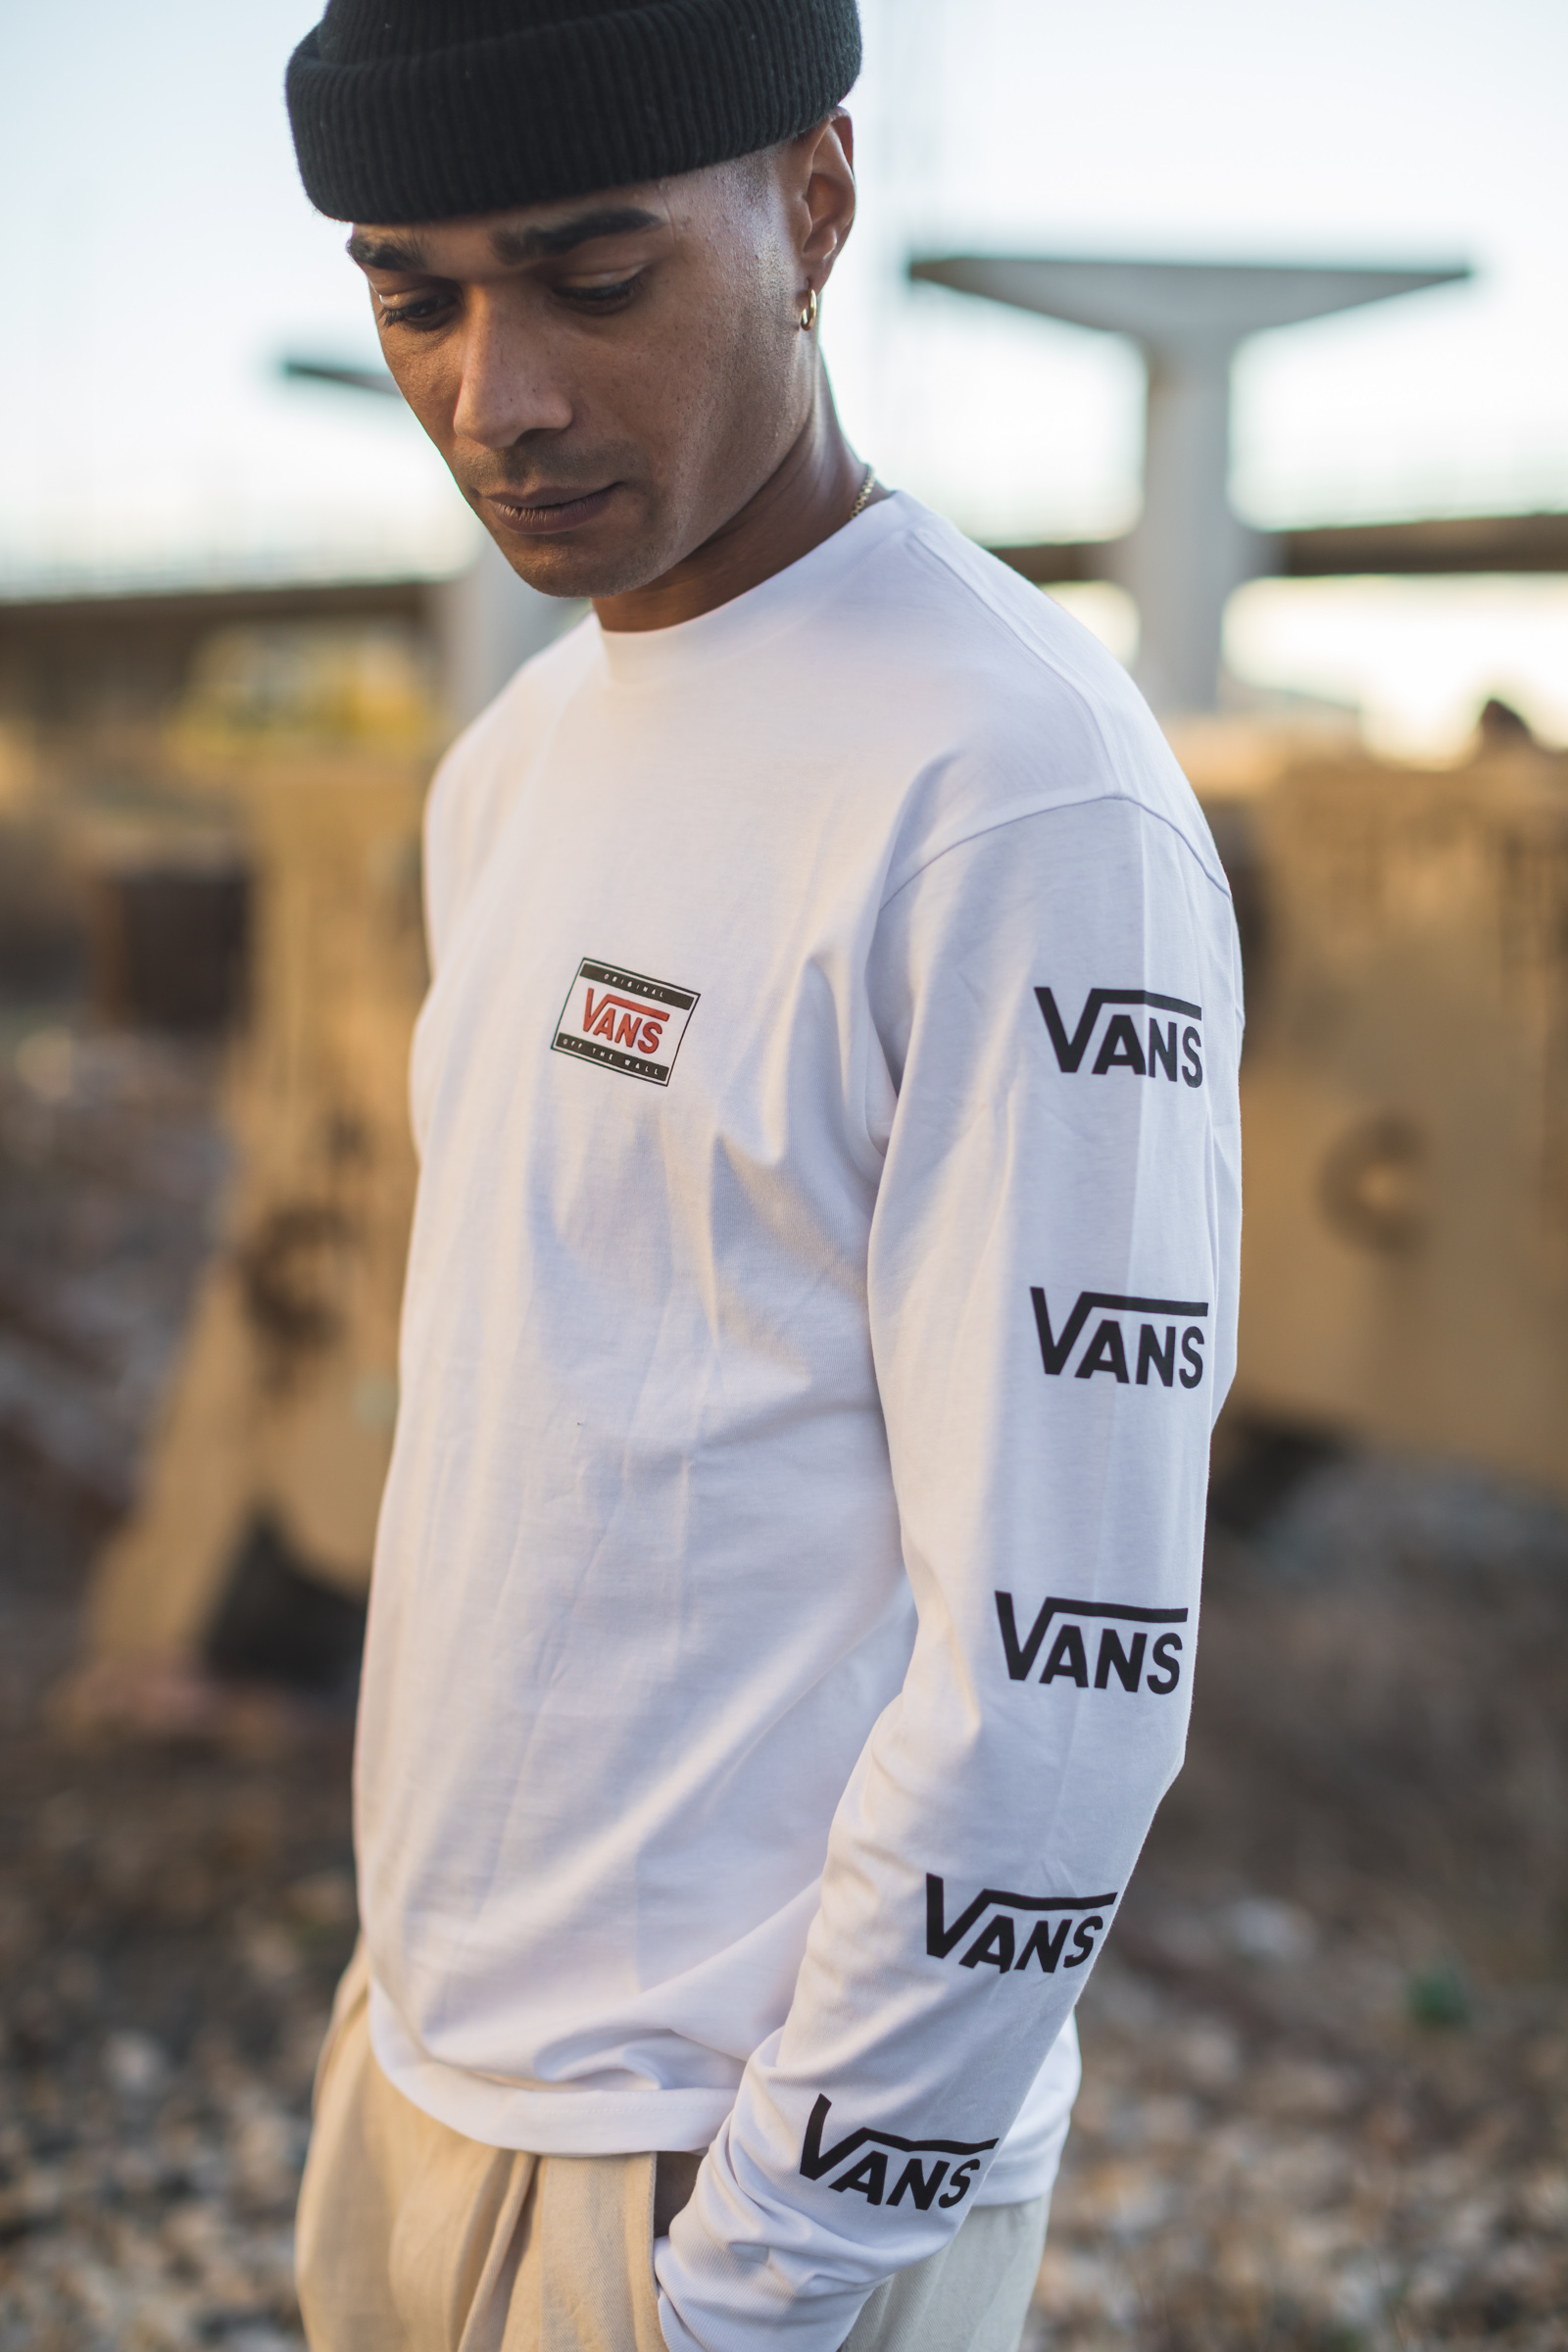 Vans x JD Sports Apparel - Marseille, France